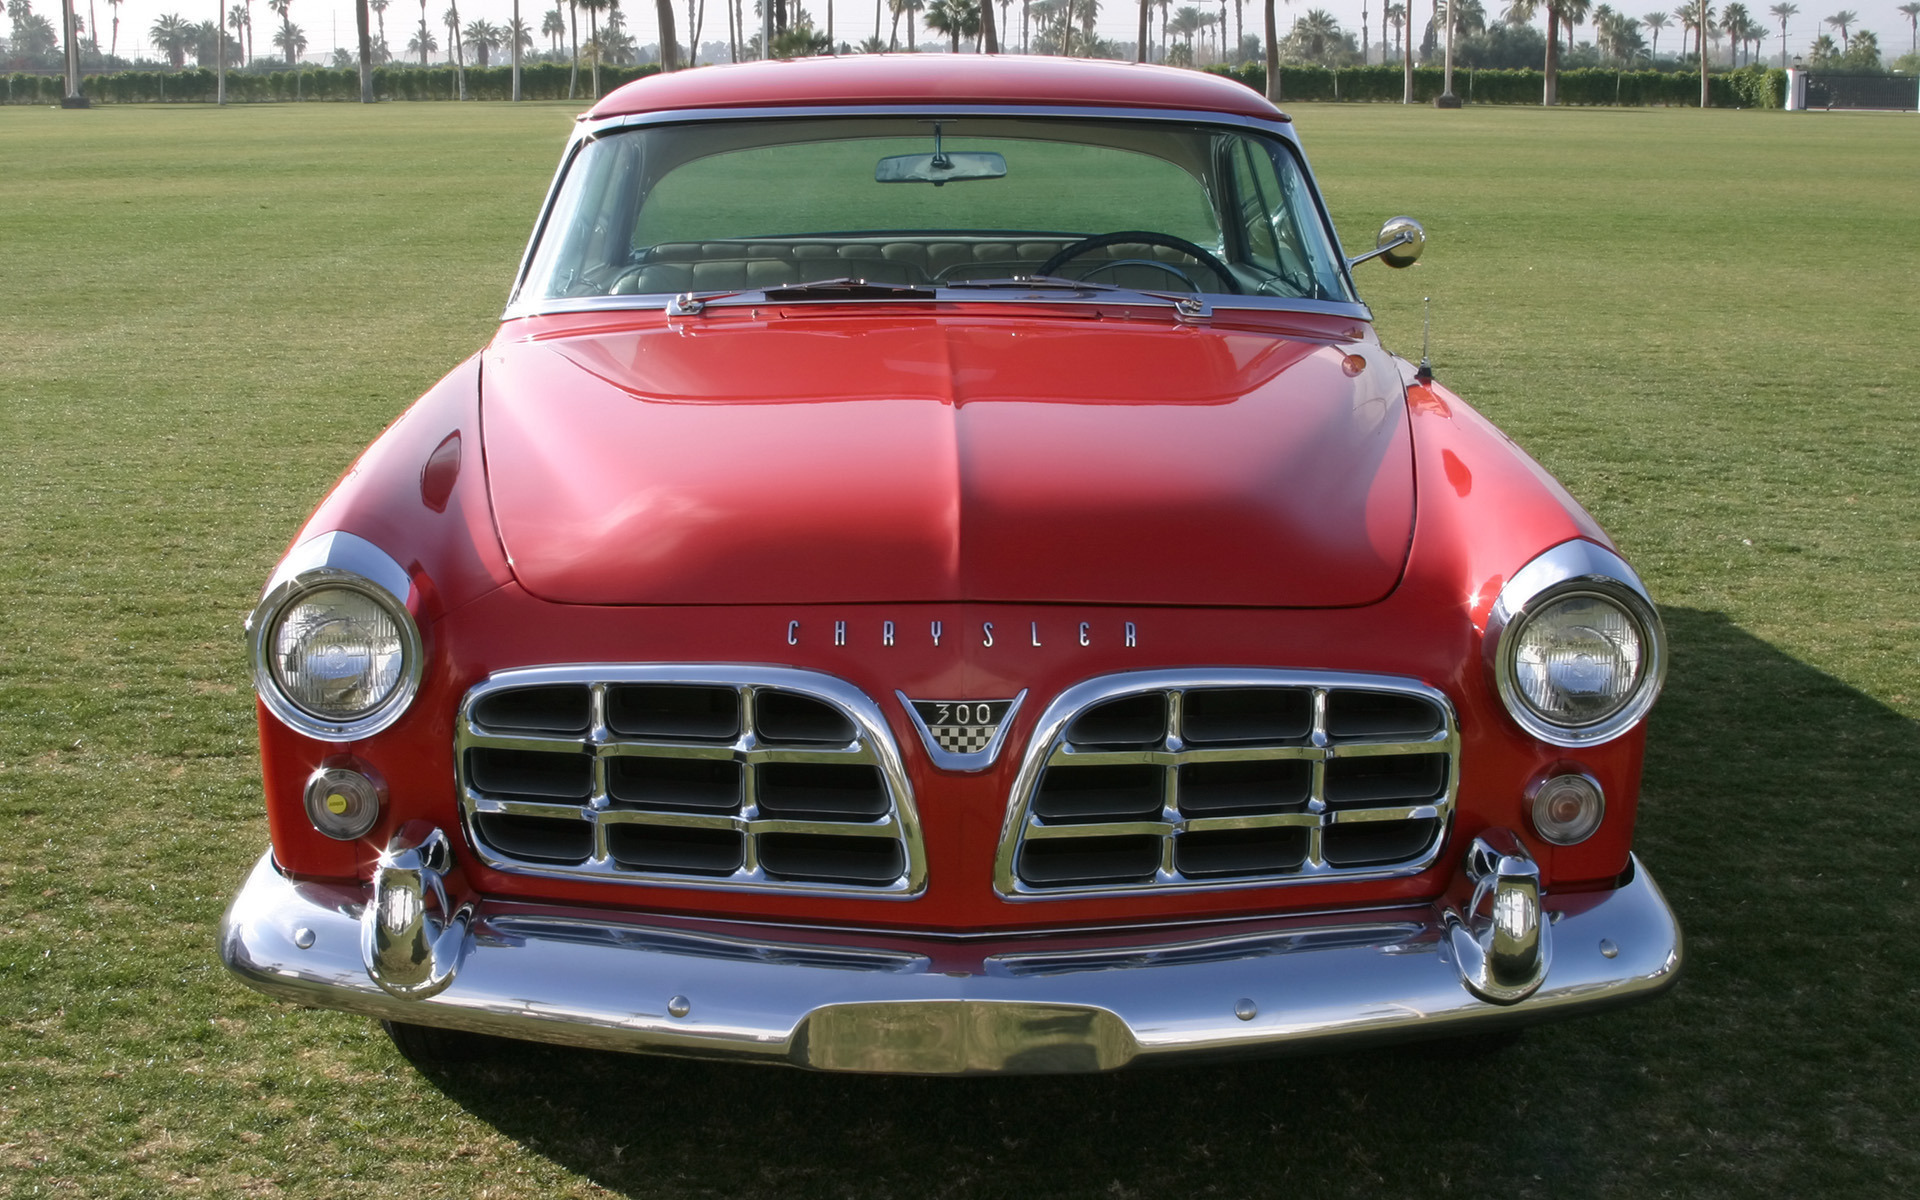 авто обои, chrysler, 1955, авто, тачки, фото, auto wallpapers, 300, sport-coupe, cars